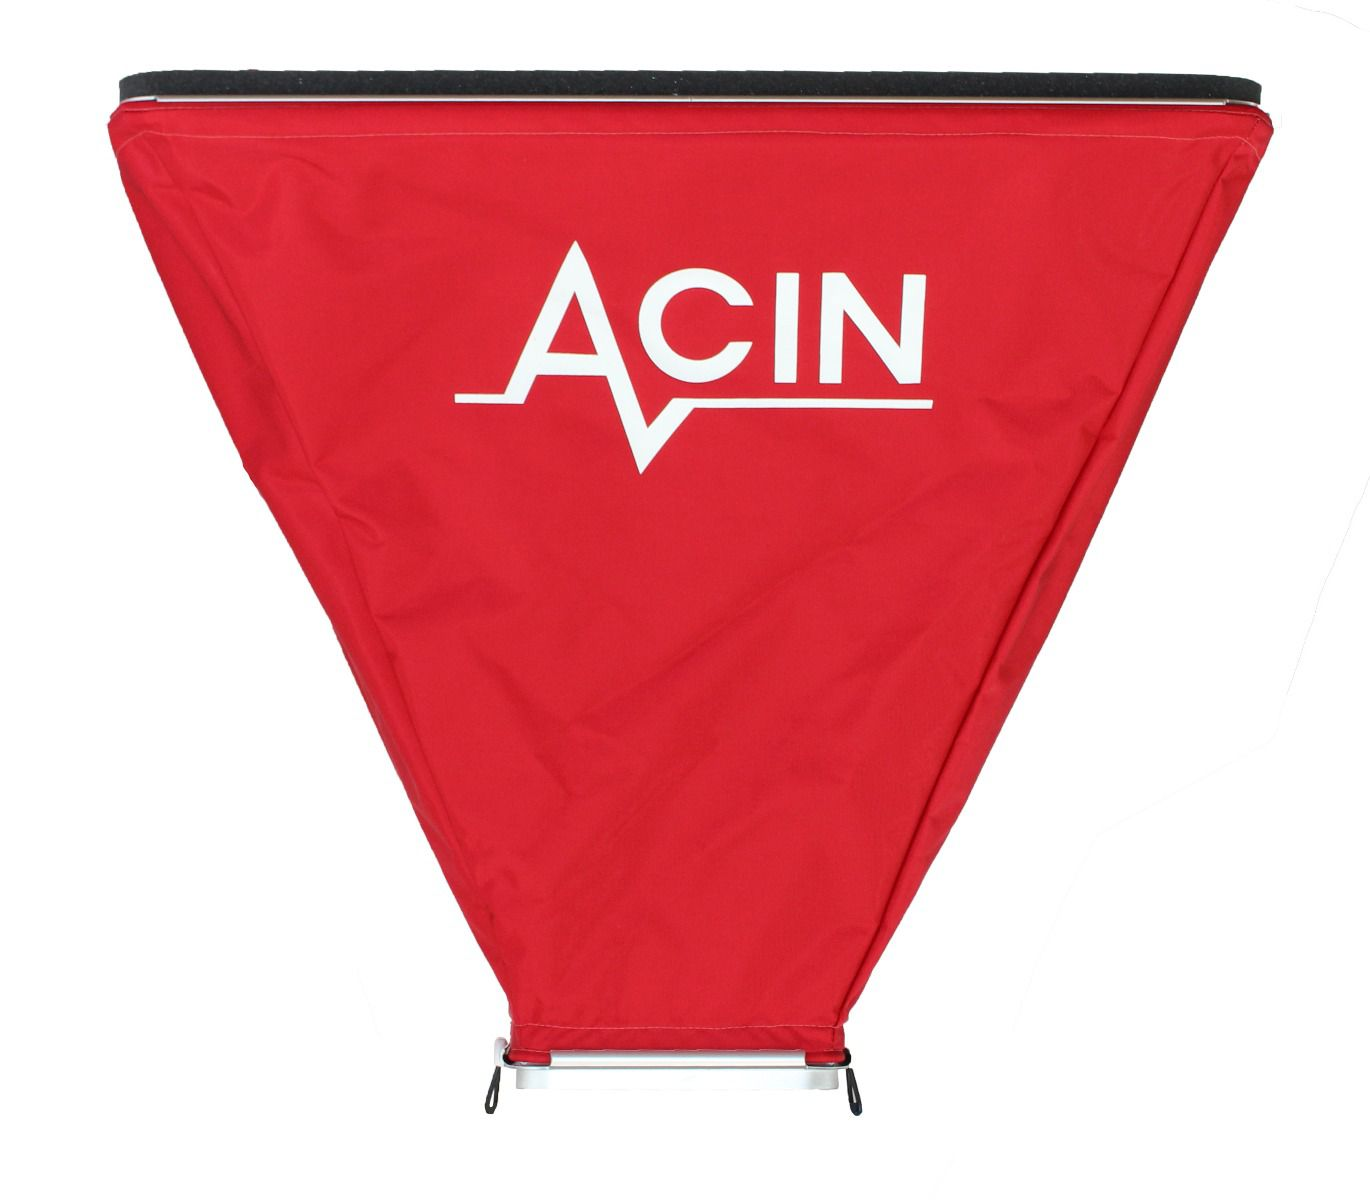 ACIN FlowFinder-Powered FlowHood accessory 24in x 24in